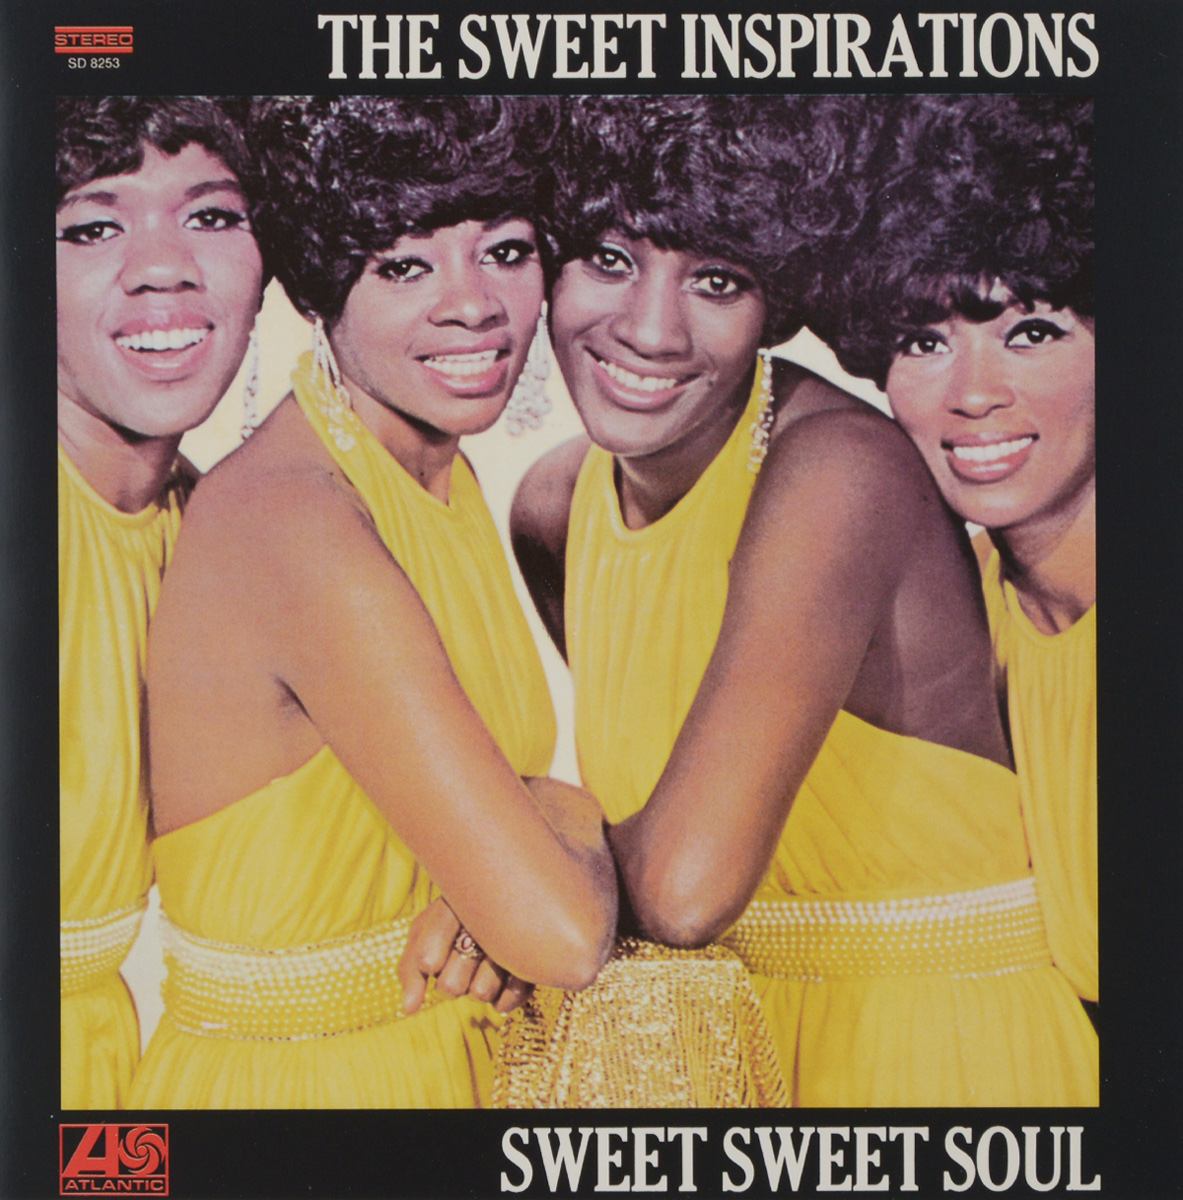 The Sweet Inspirations. Sweet Sweet Soul